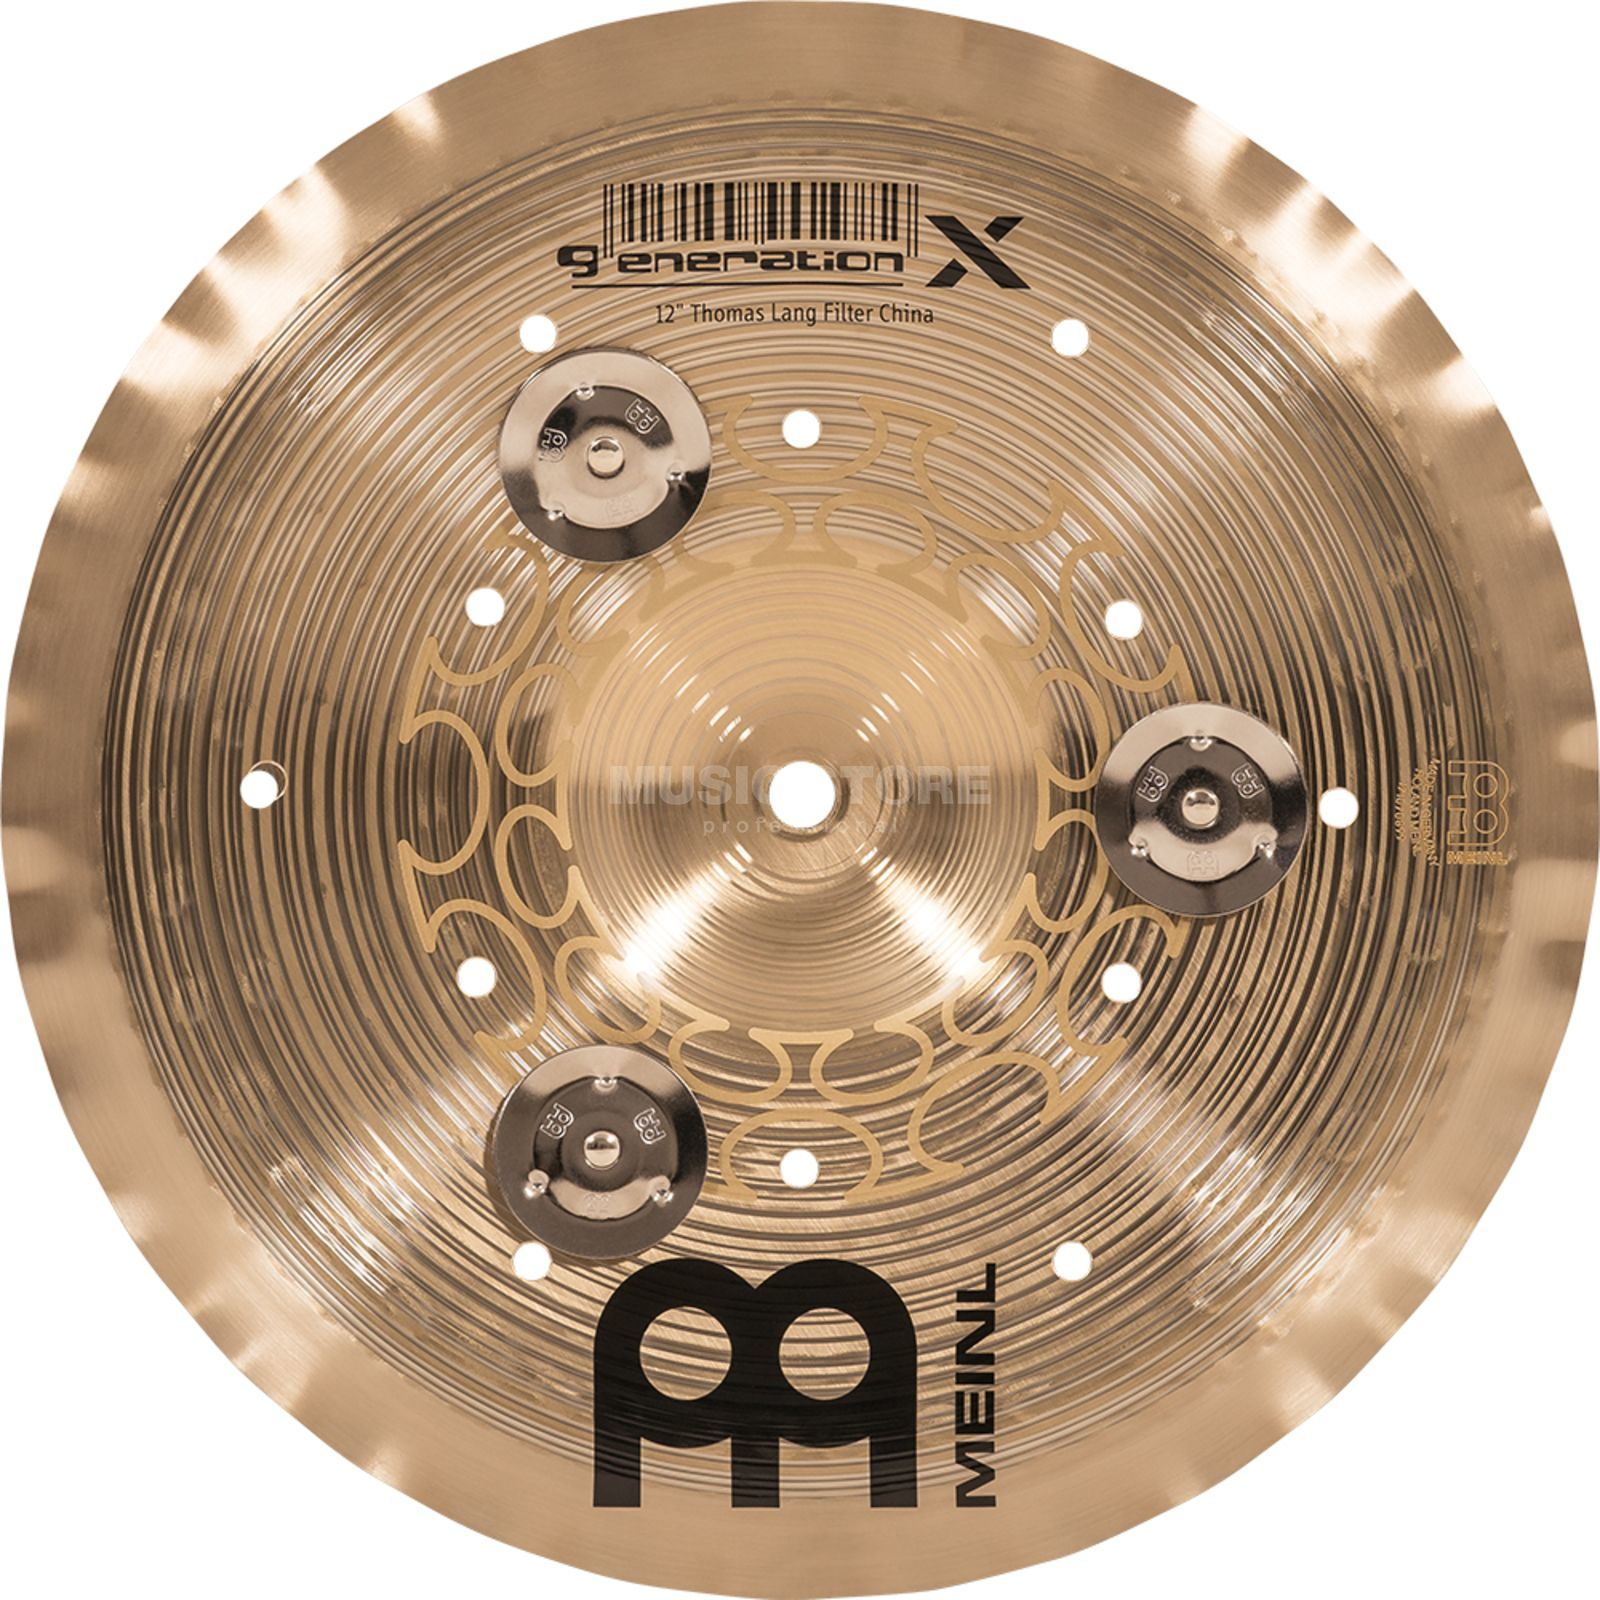 "Meinl Generation X Filter China 12"" GX-12FCH-J, with Jingles Productafbeelding"